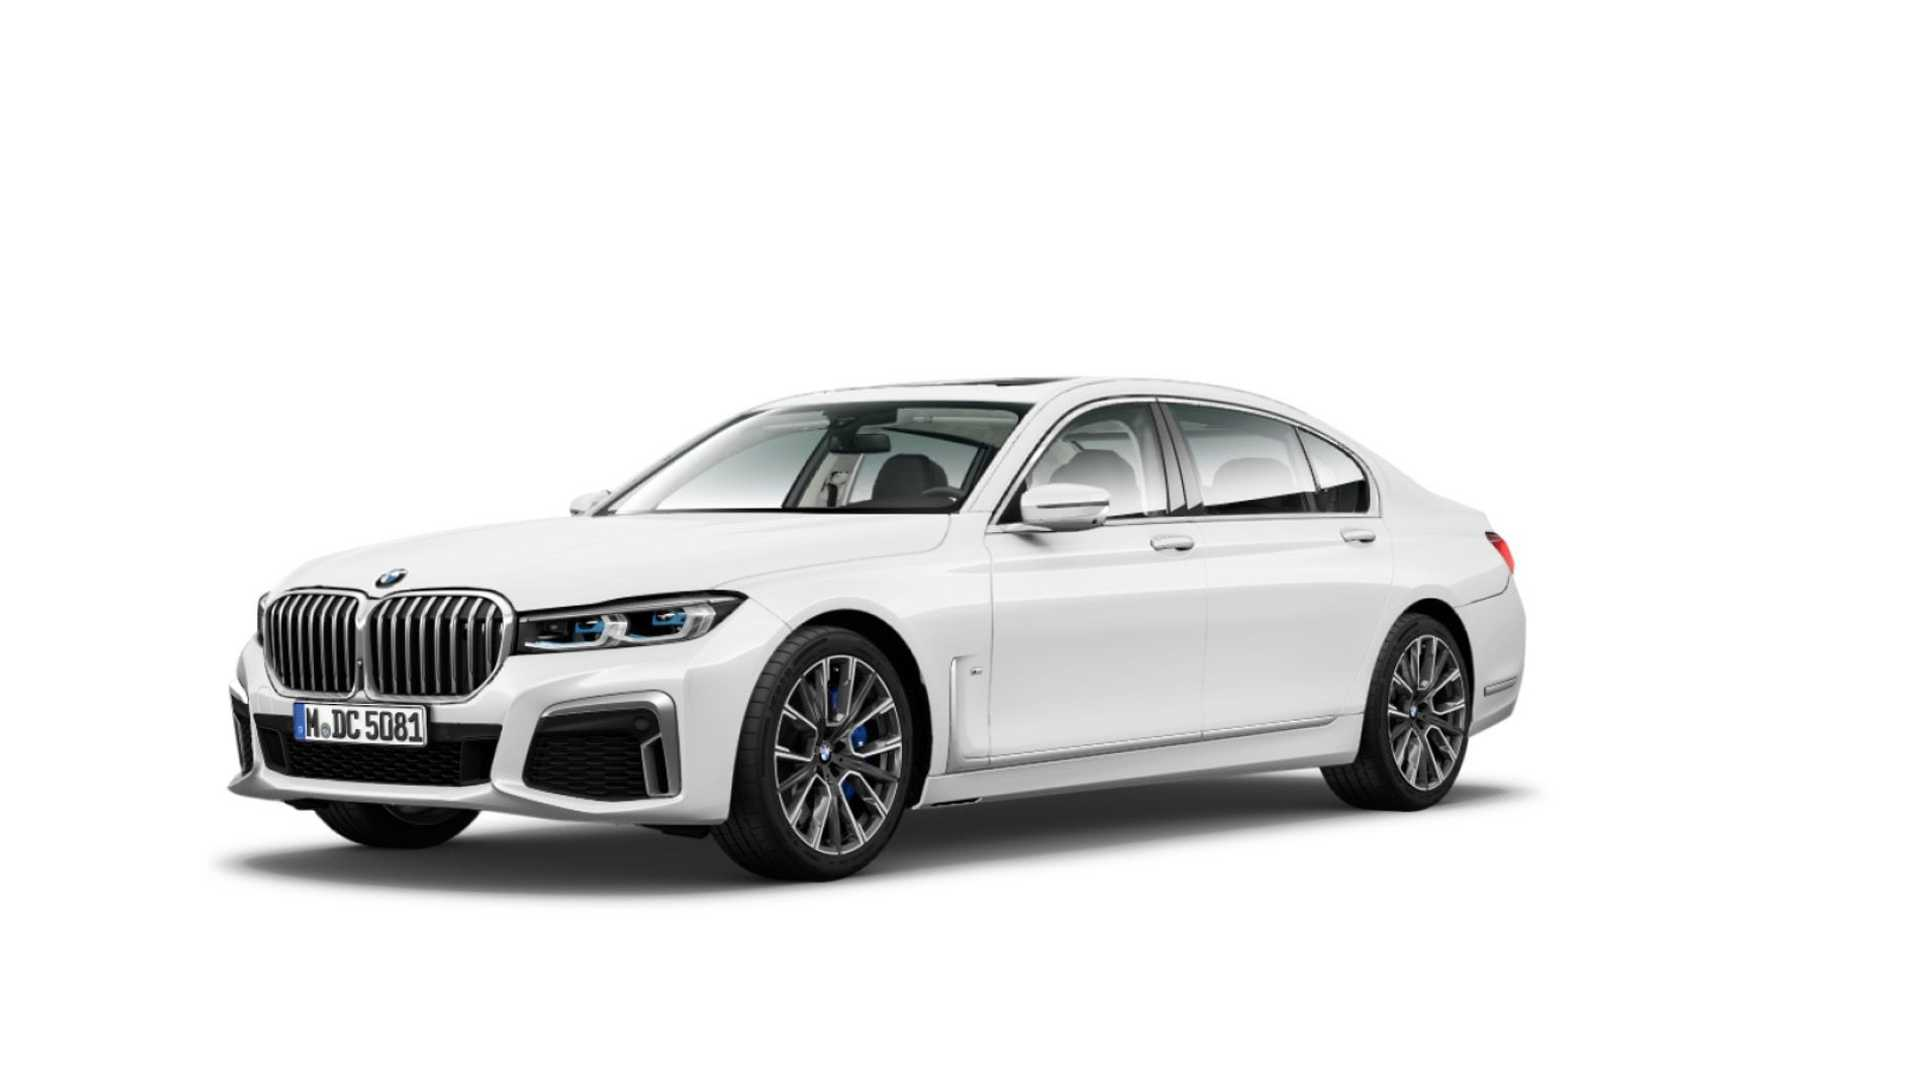 BMW 7 Series facelift 2019 leaked official images (3)